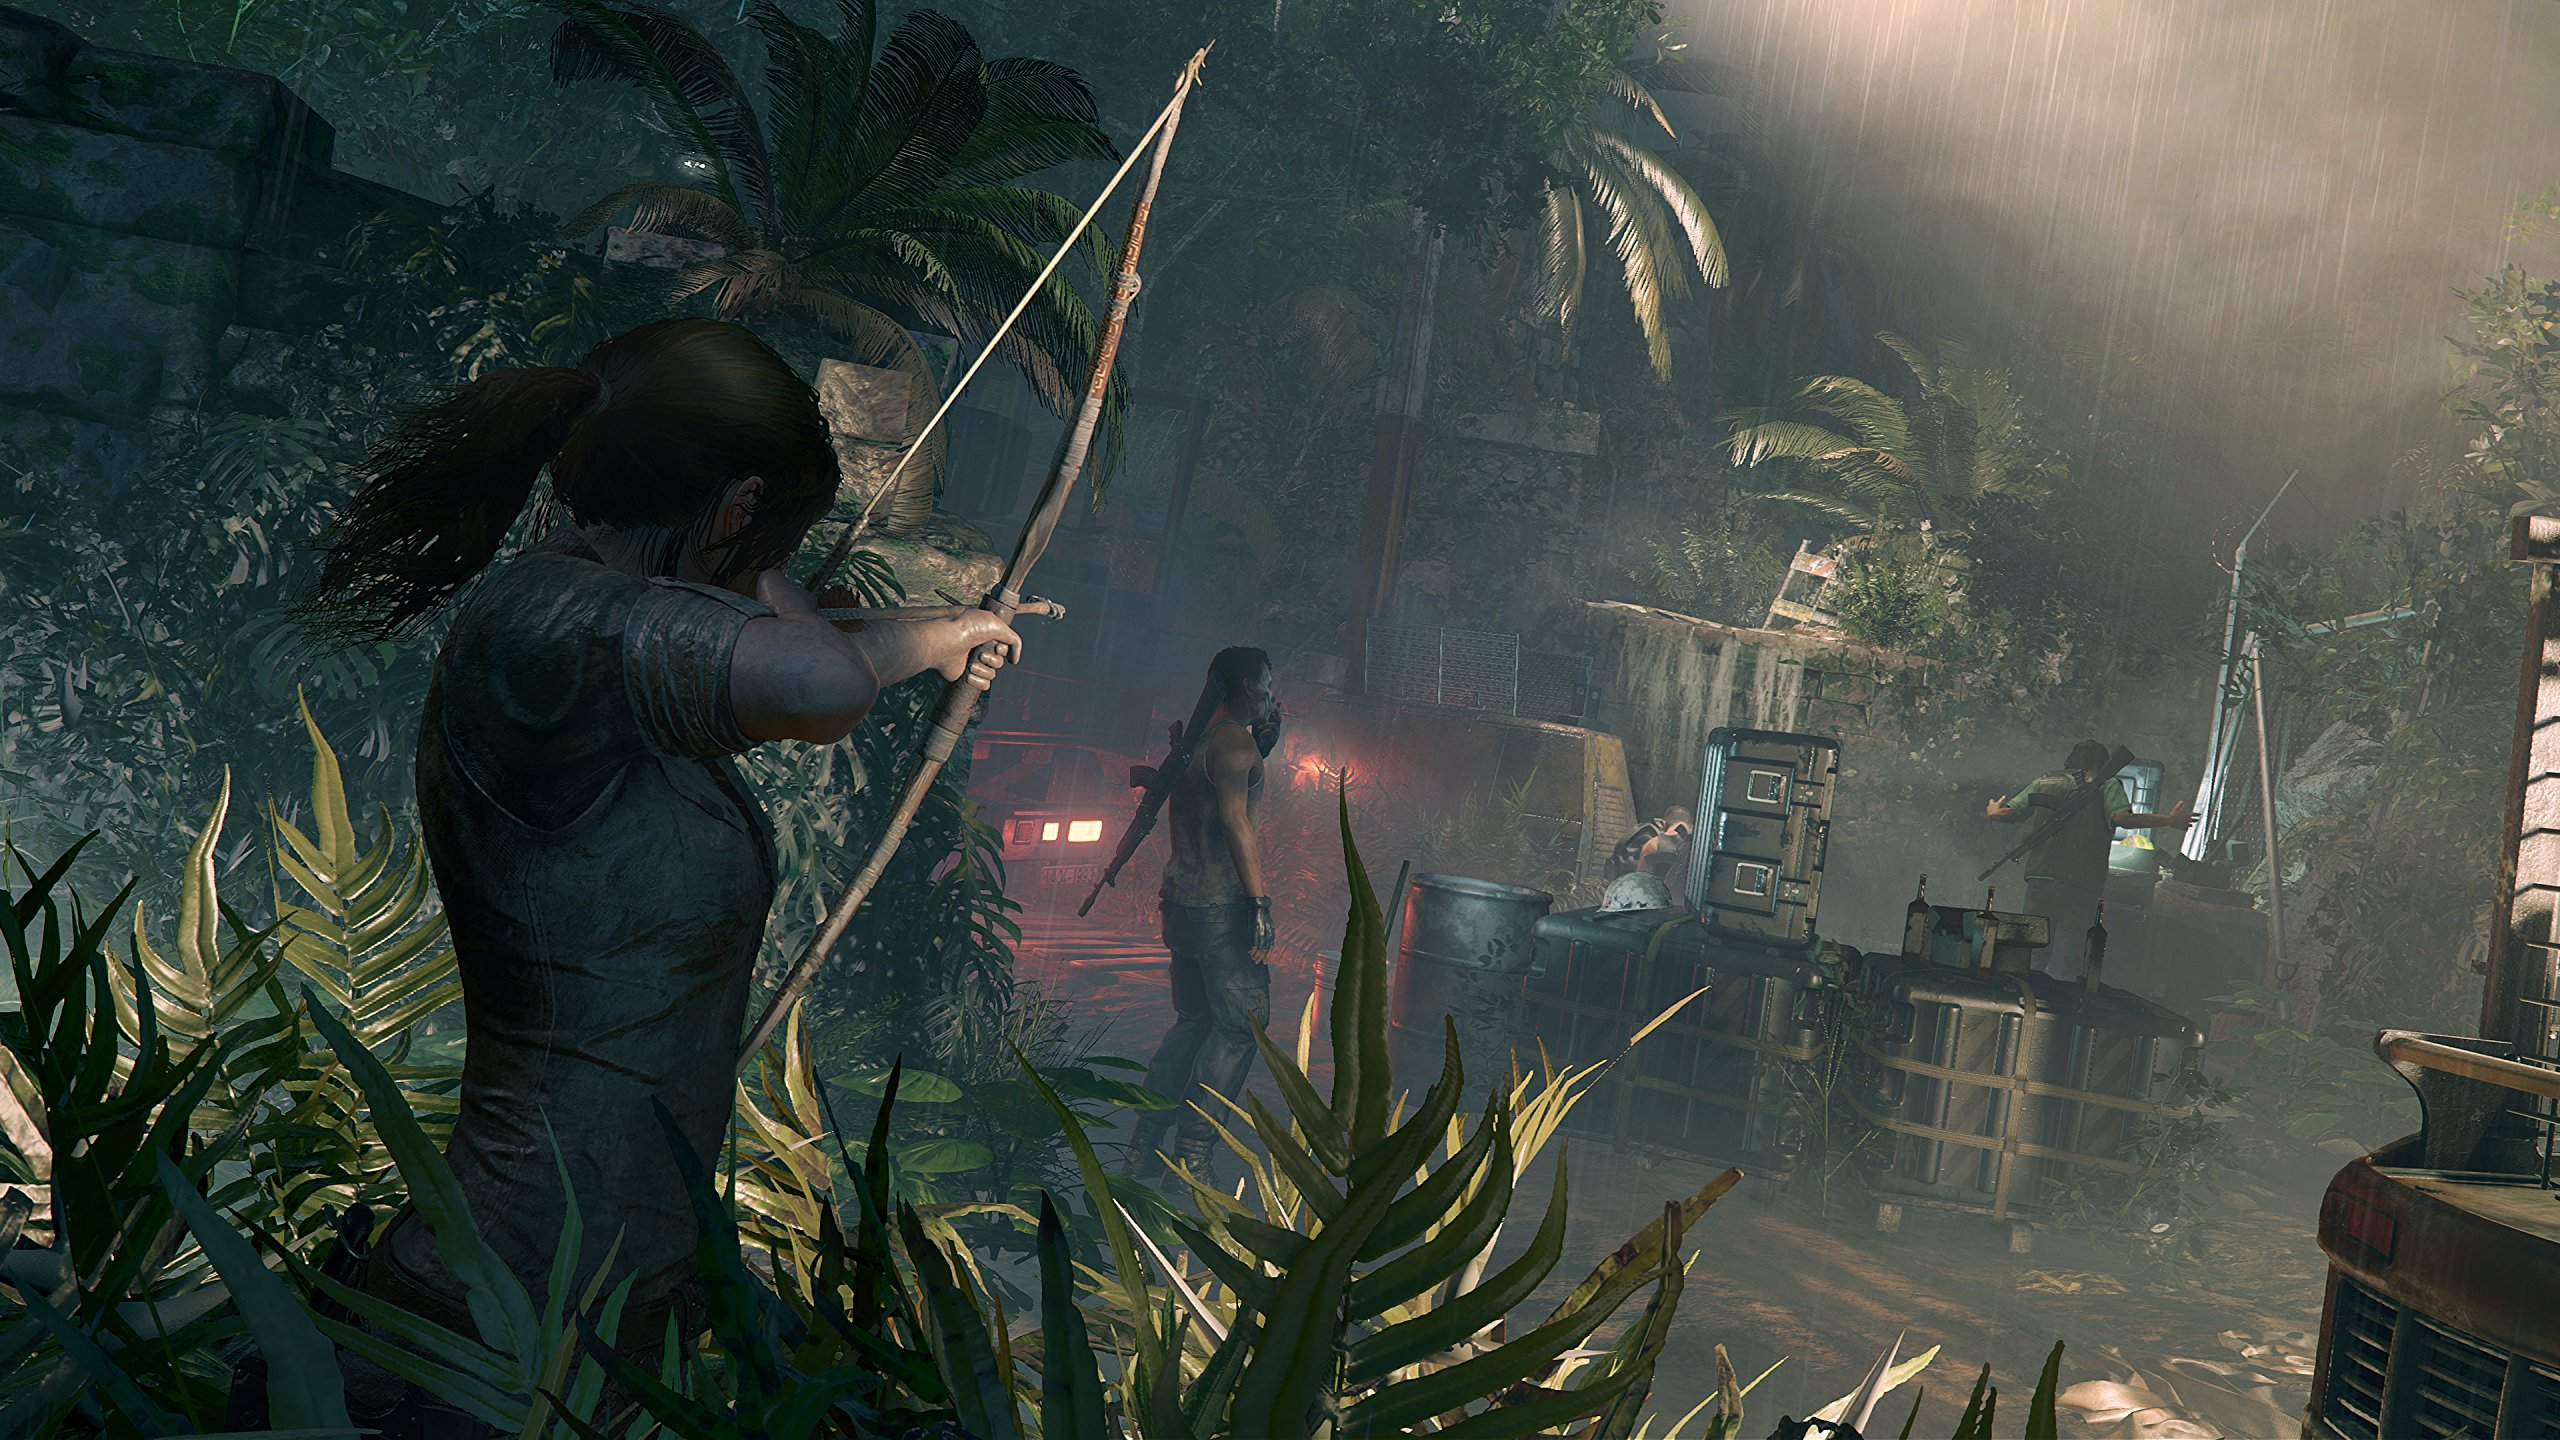 Shadow of the Tomb Raider - Lara aiming her bow at some enemies in the jungle